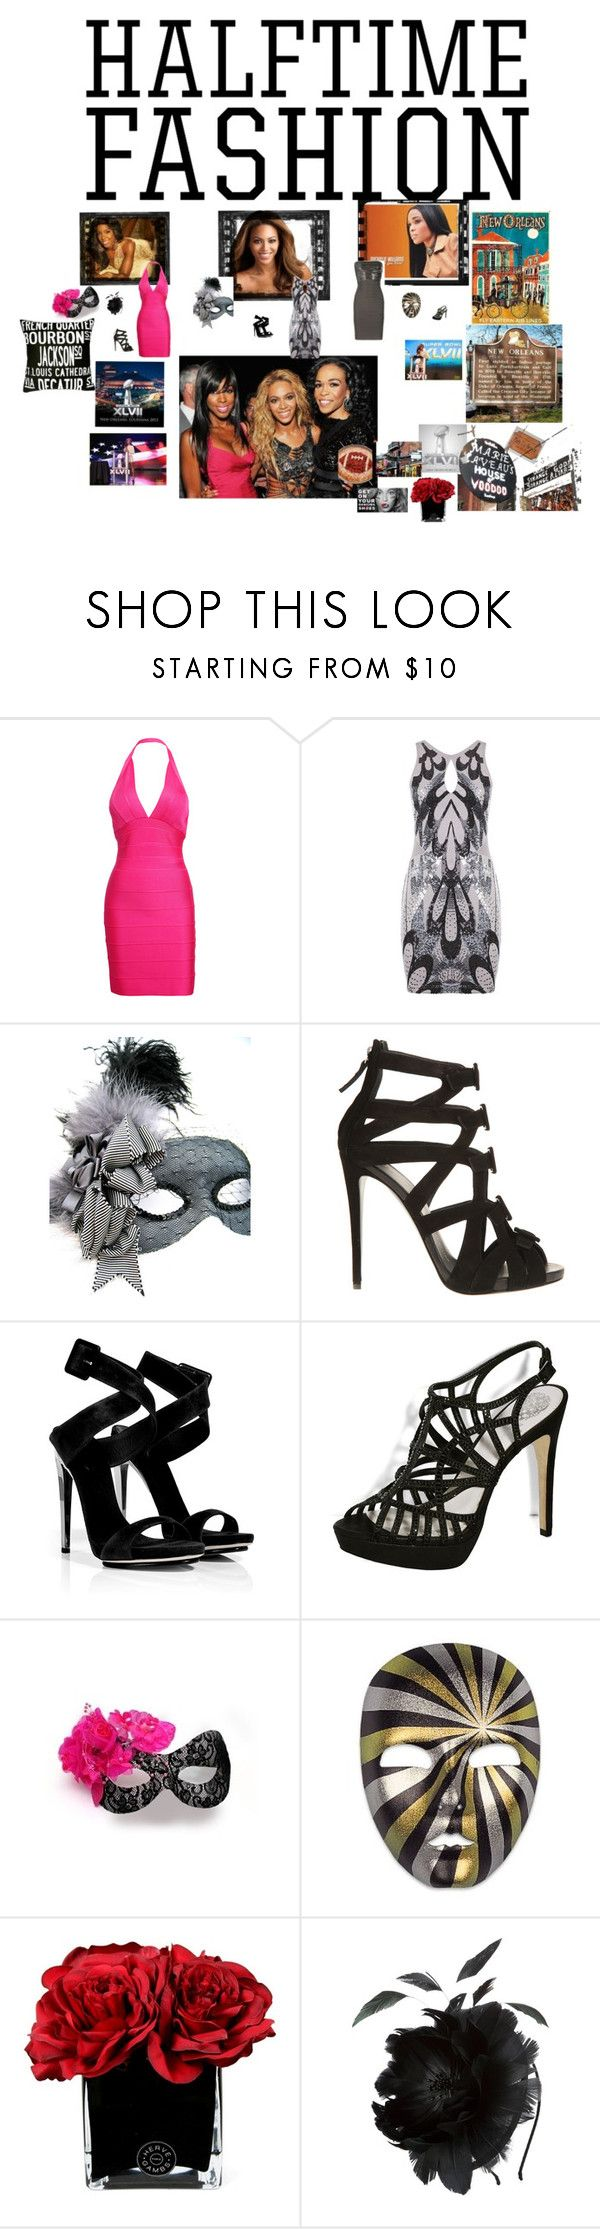 """""""SuperBowl N'awlinslChic 2013"""" by greenchicdesignz ❤ liked on Polyvore featuring Lipsy, Masquerade, Giuseppe Zanotti, Vince Camuto, Hervé Gambs, John Lewis, 2013, kelly rowland, february 13 and super bowl xlvii"""